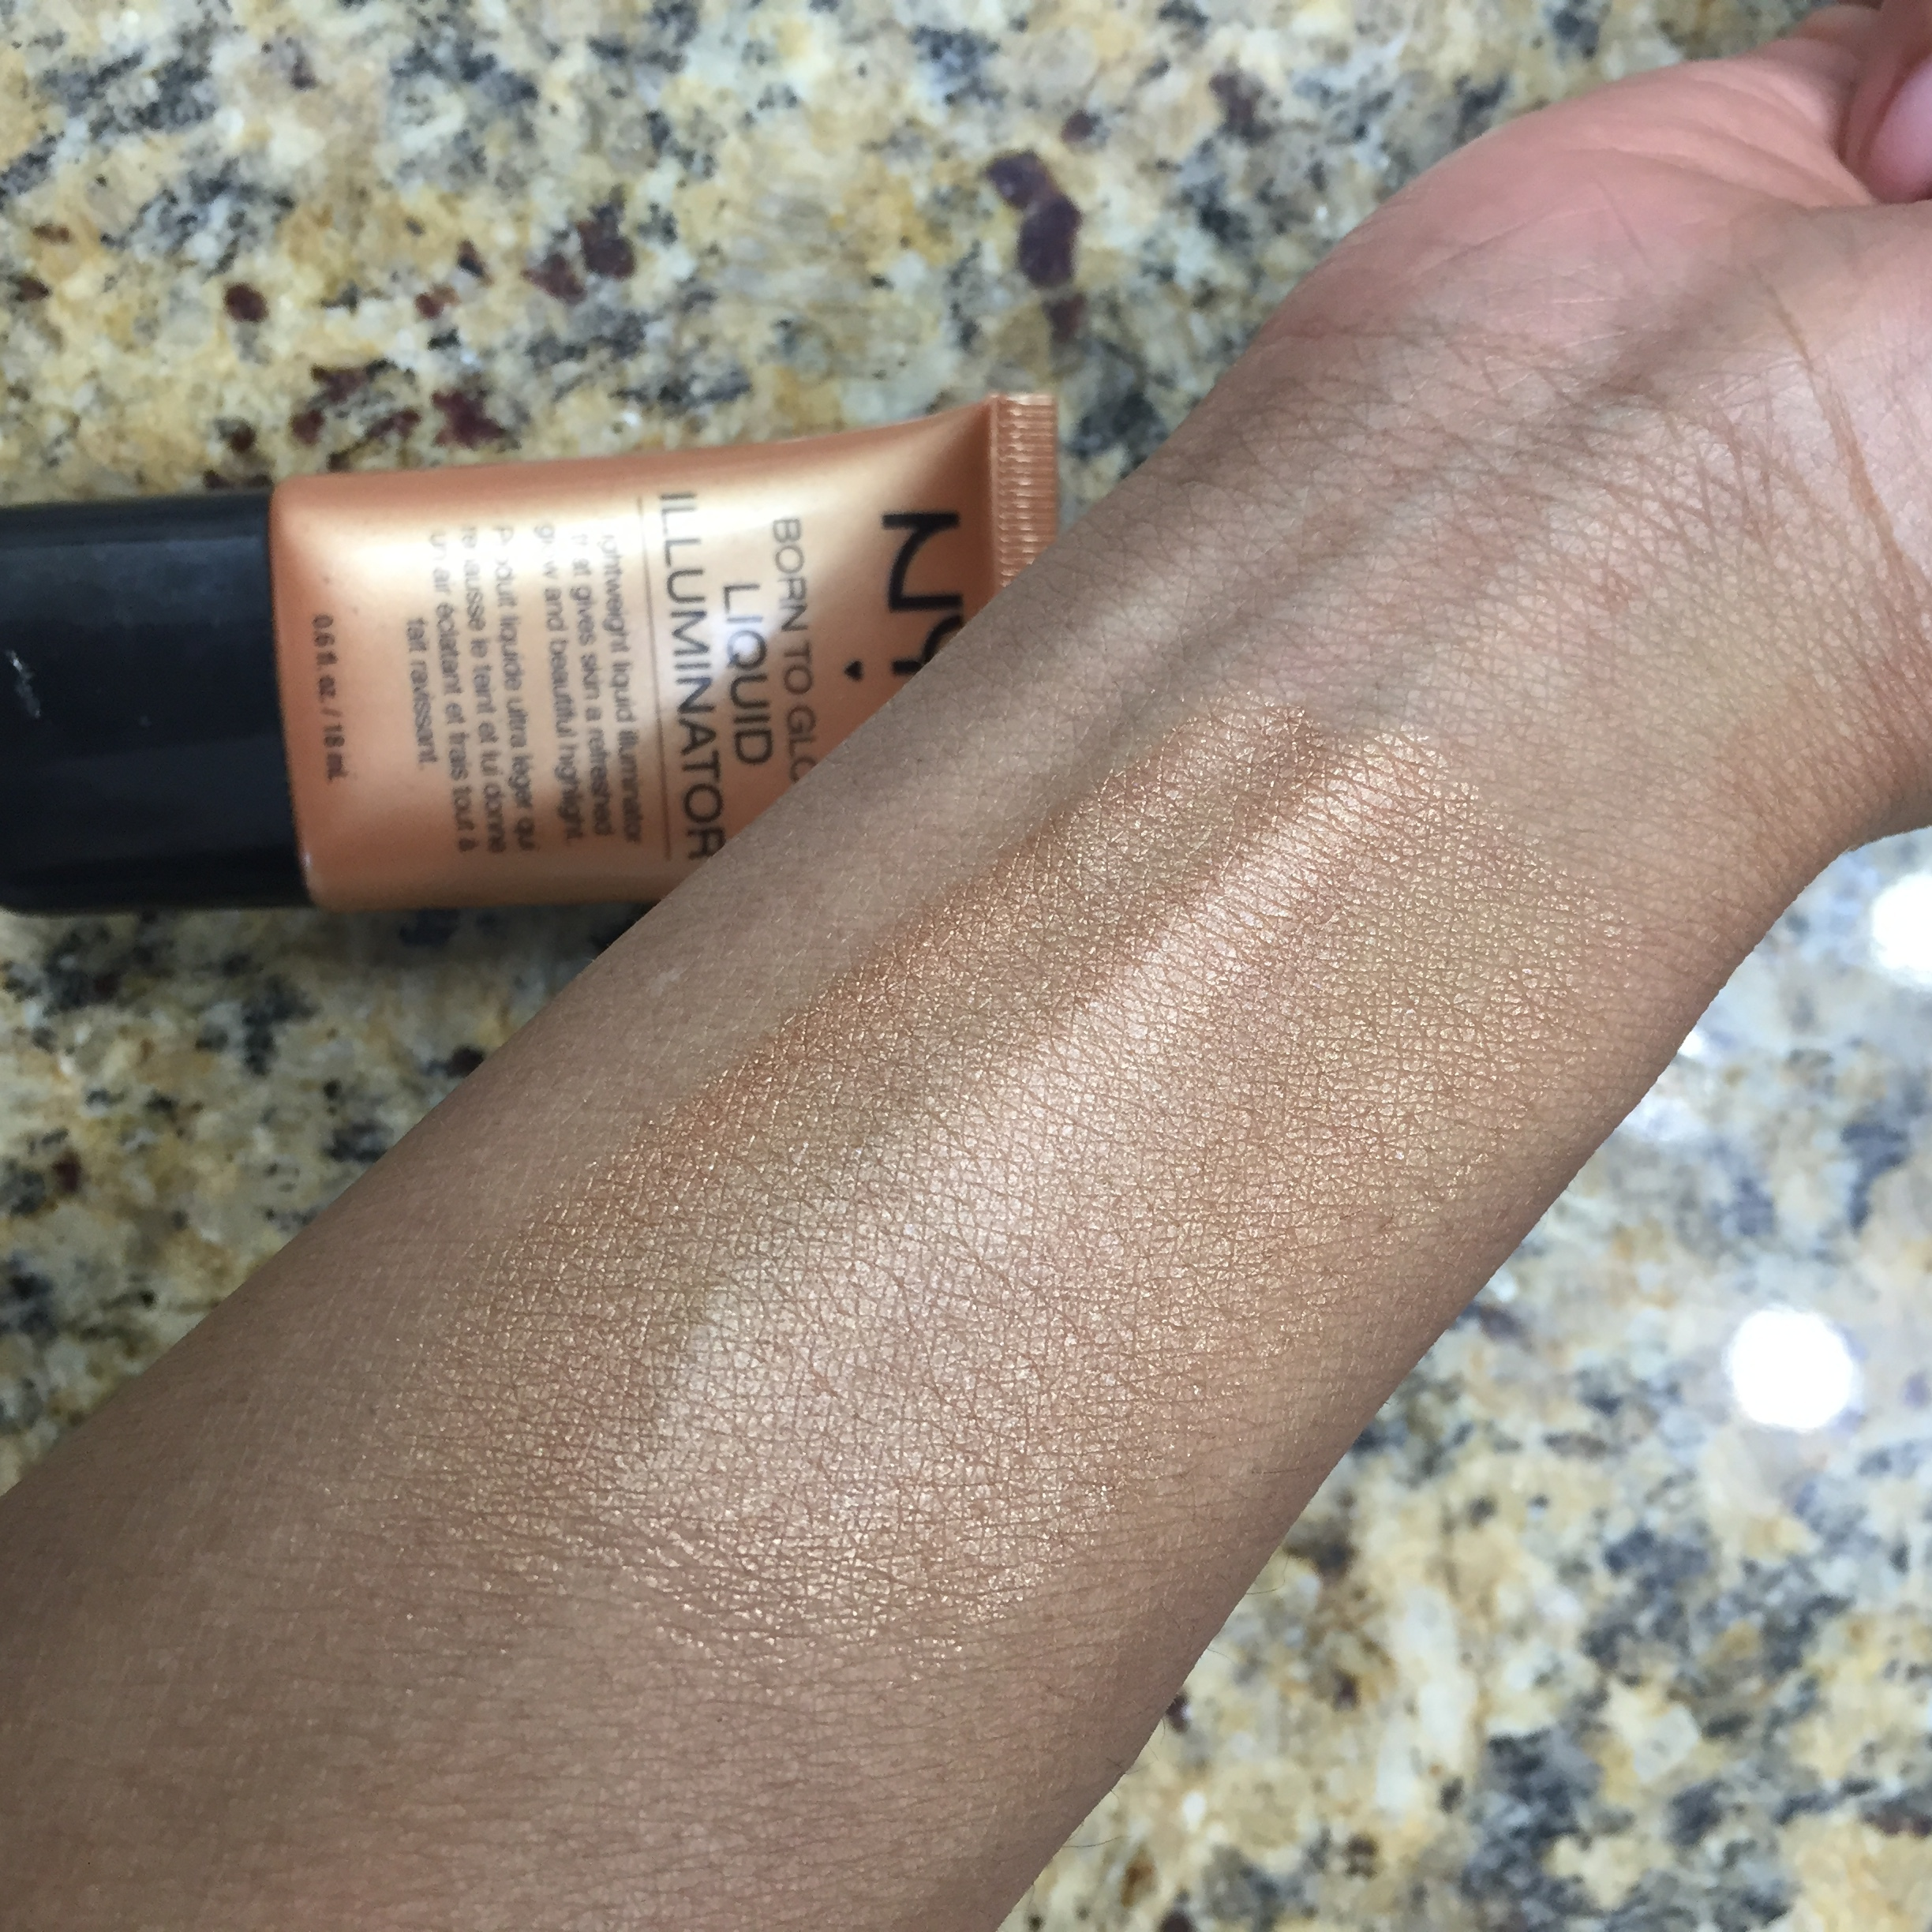 Upon blending the product into my skin, you can see the subtle gold glow that is beginning to enhance my skin.